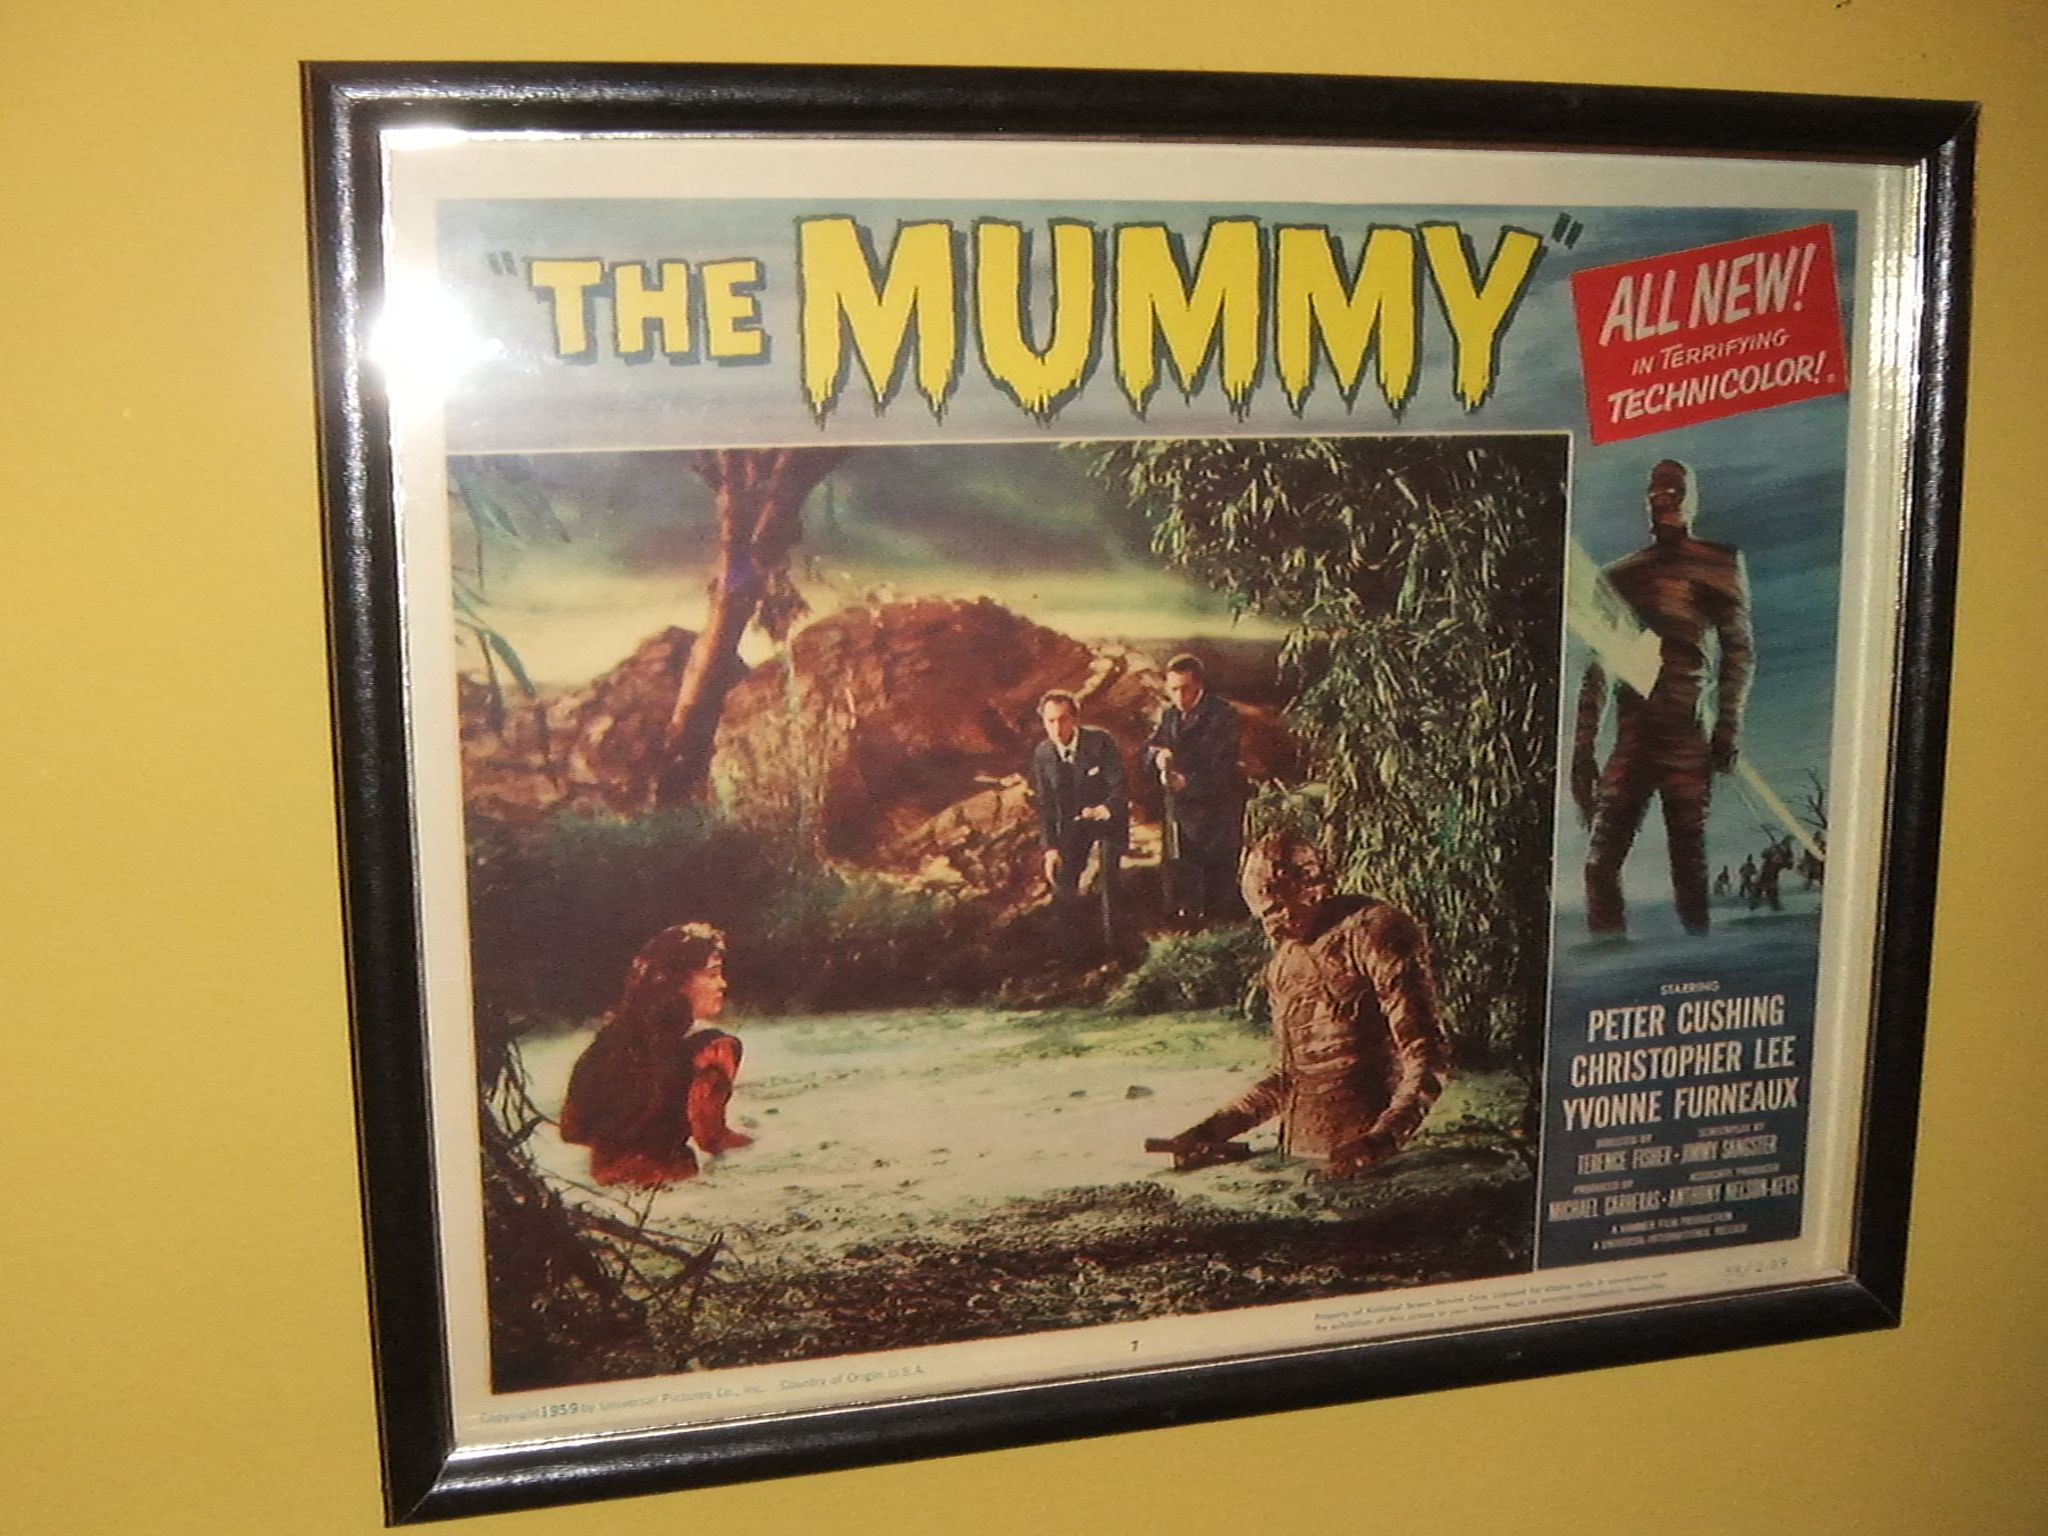 Hammer Films' THE MUMMY lobby card.